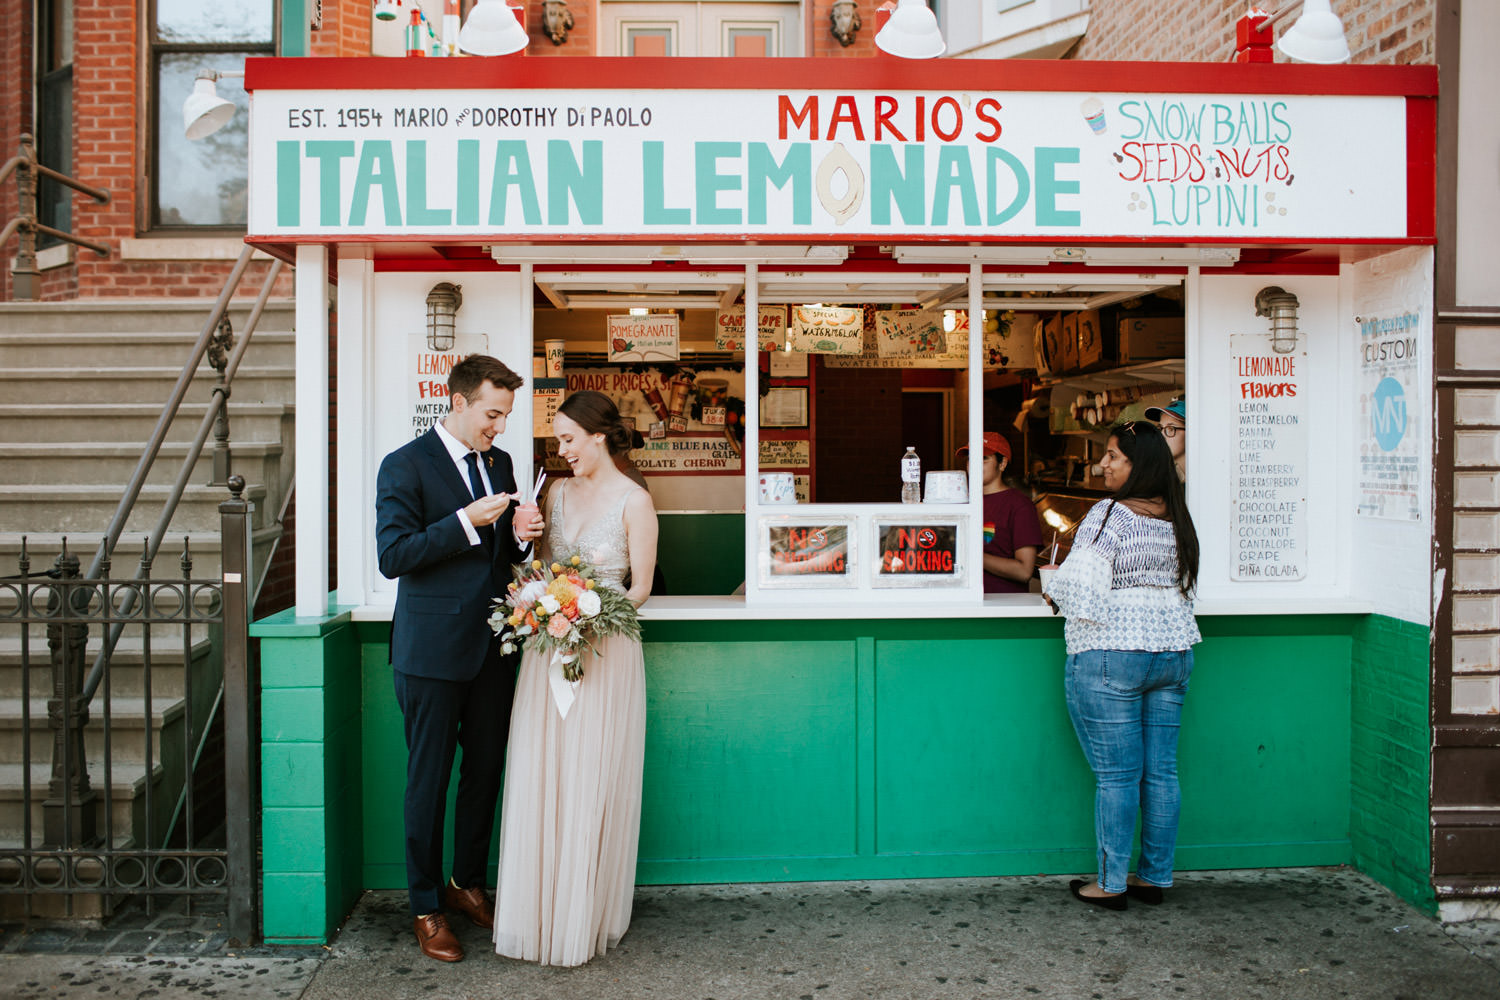 Unique Wedding picture of the bride and groom after the ceremony eating ice cream